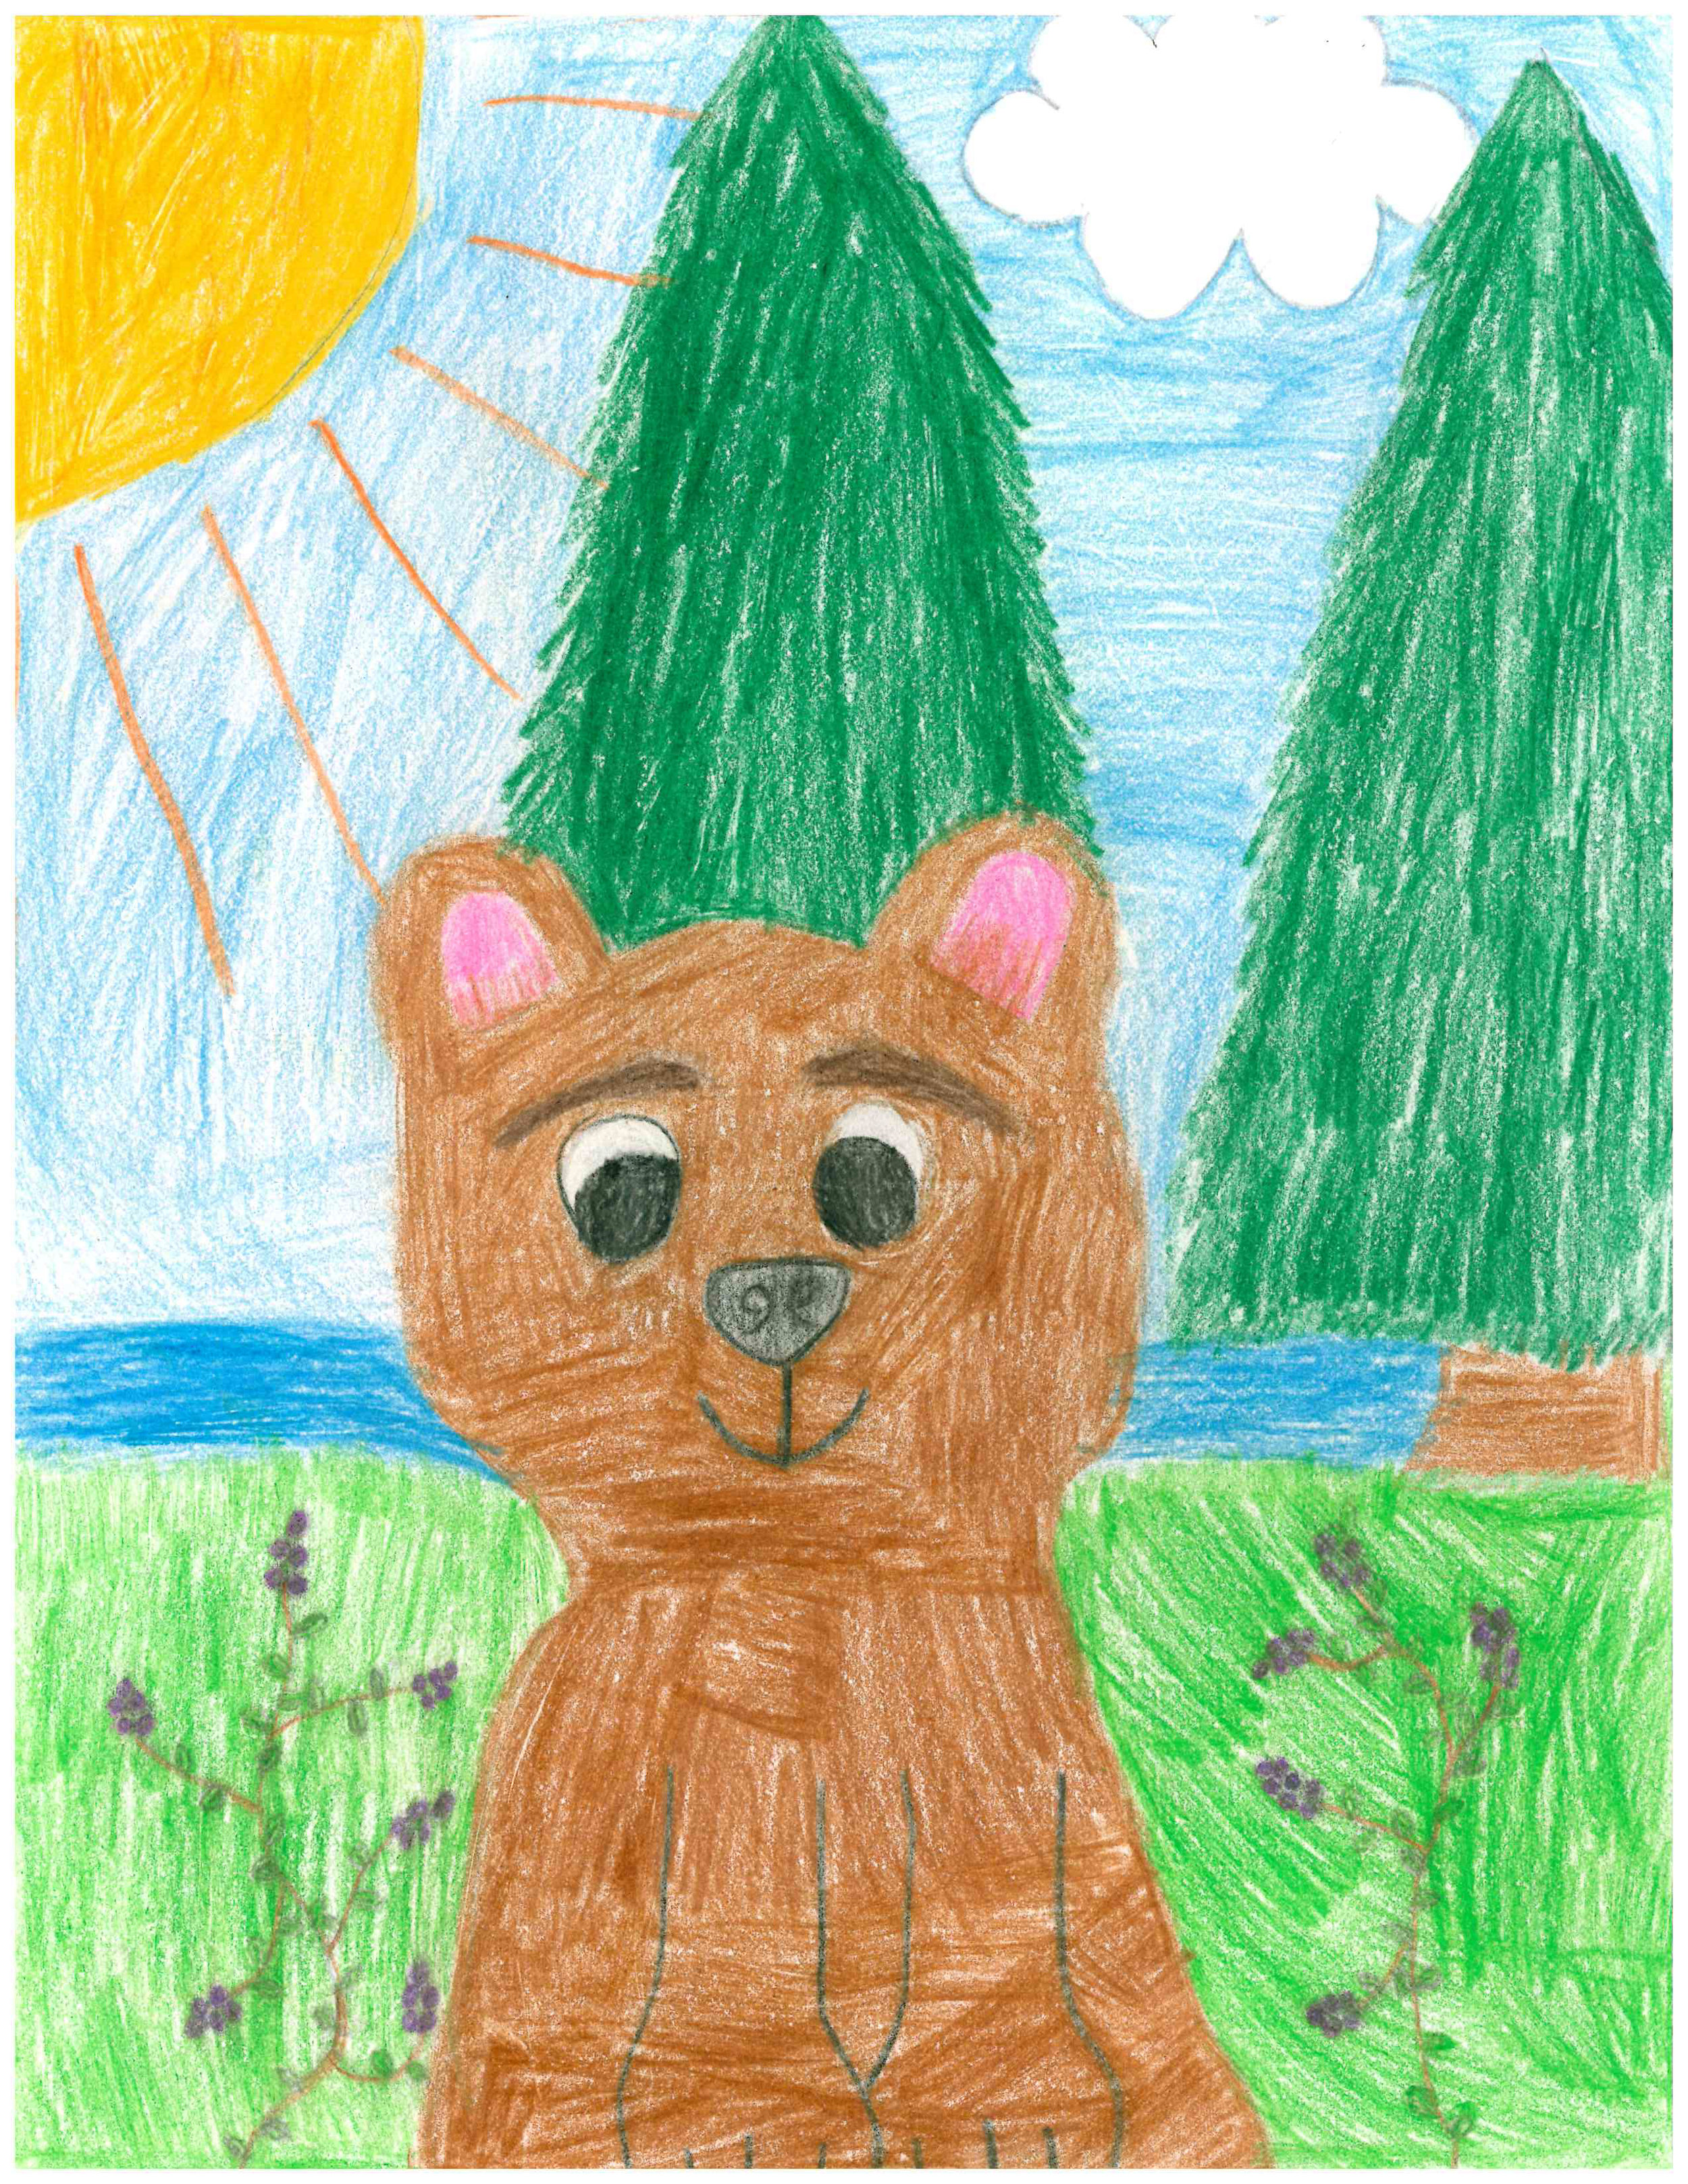 Huckle Bear by Genevieve Buck - 2nd Place - Grades K-2 (but really 3-5)